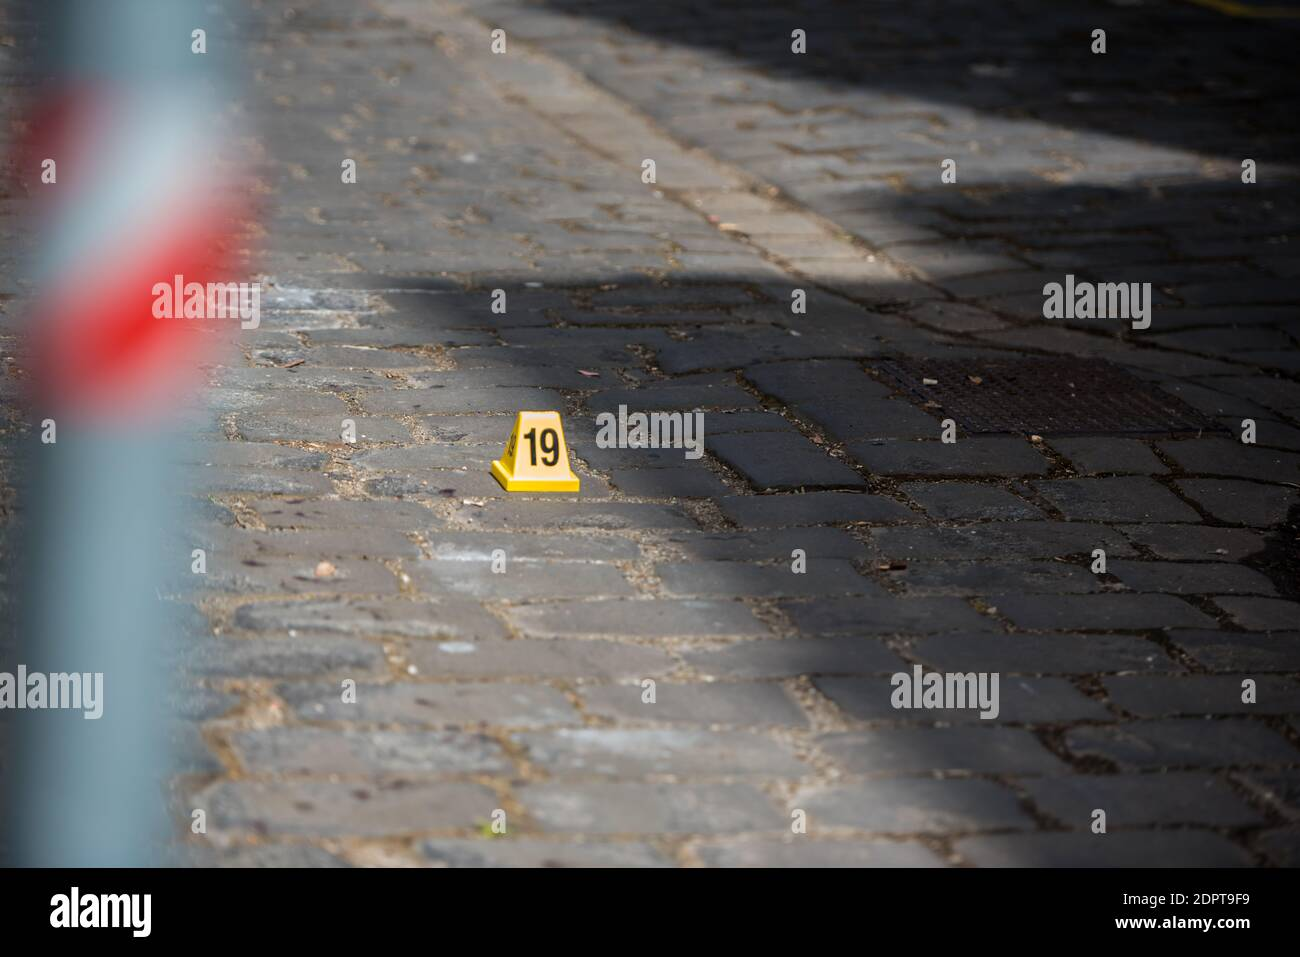 """Melbourne, Australia. 19th Dec, 2020. Blood marks left on brick road in an alley way near famous night spot.A man was found with severe injuries on his hands and after a police investigation it was found to be a """"medical incident"""" where the injuries were self-inflicted police reports. Credit: SOPA Images Limited/Alamy Live News Stock Photo"""